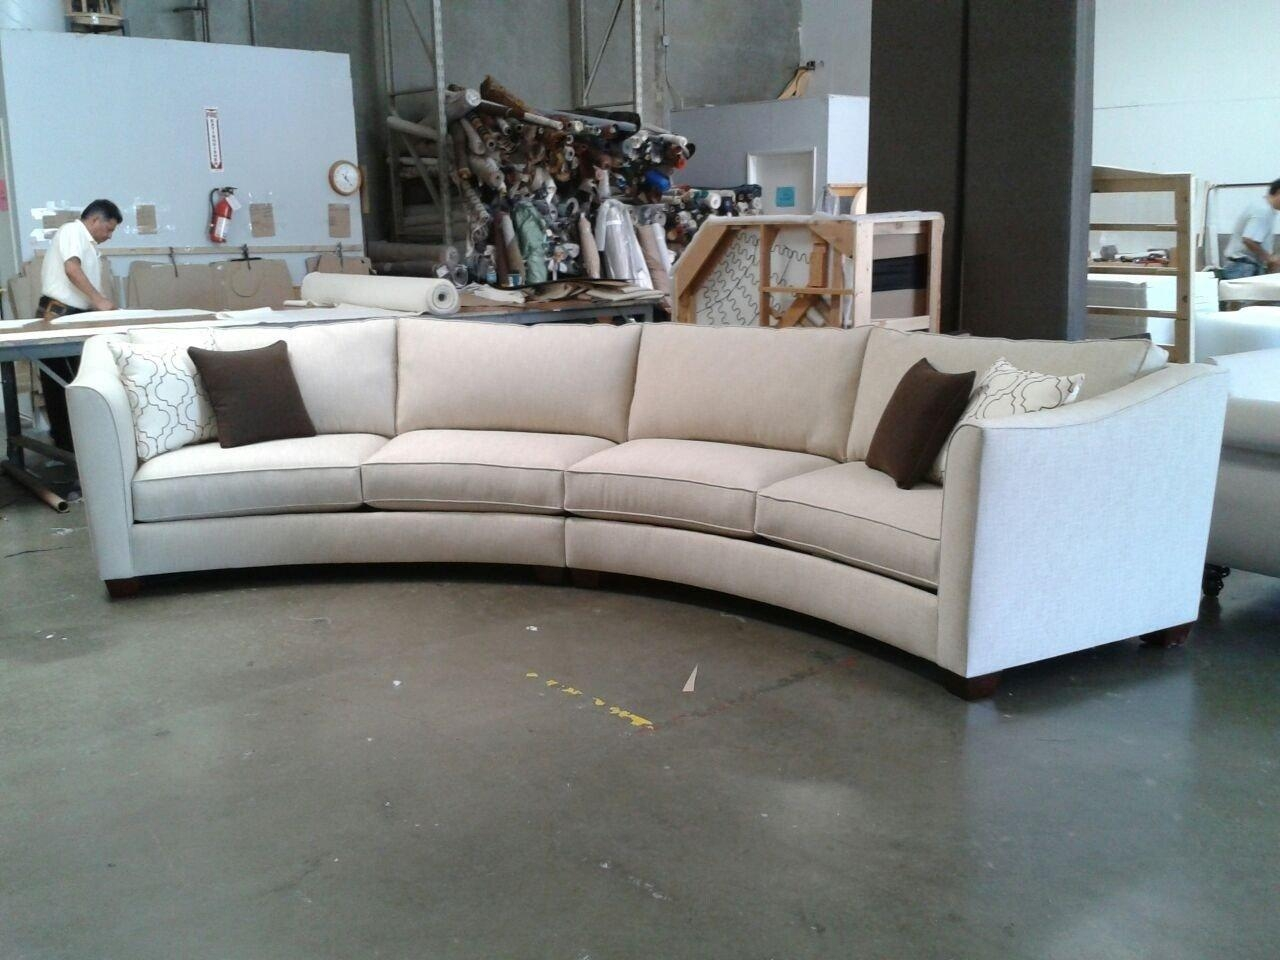 Curved Sectional Sofa: Glamour For Interior — Home Design Within Round Sectional Sofa (Image 4 of 20)